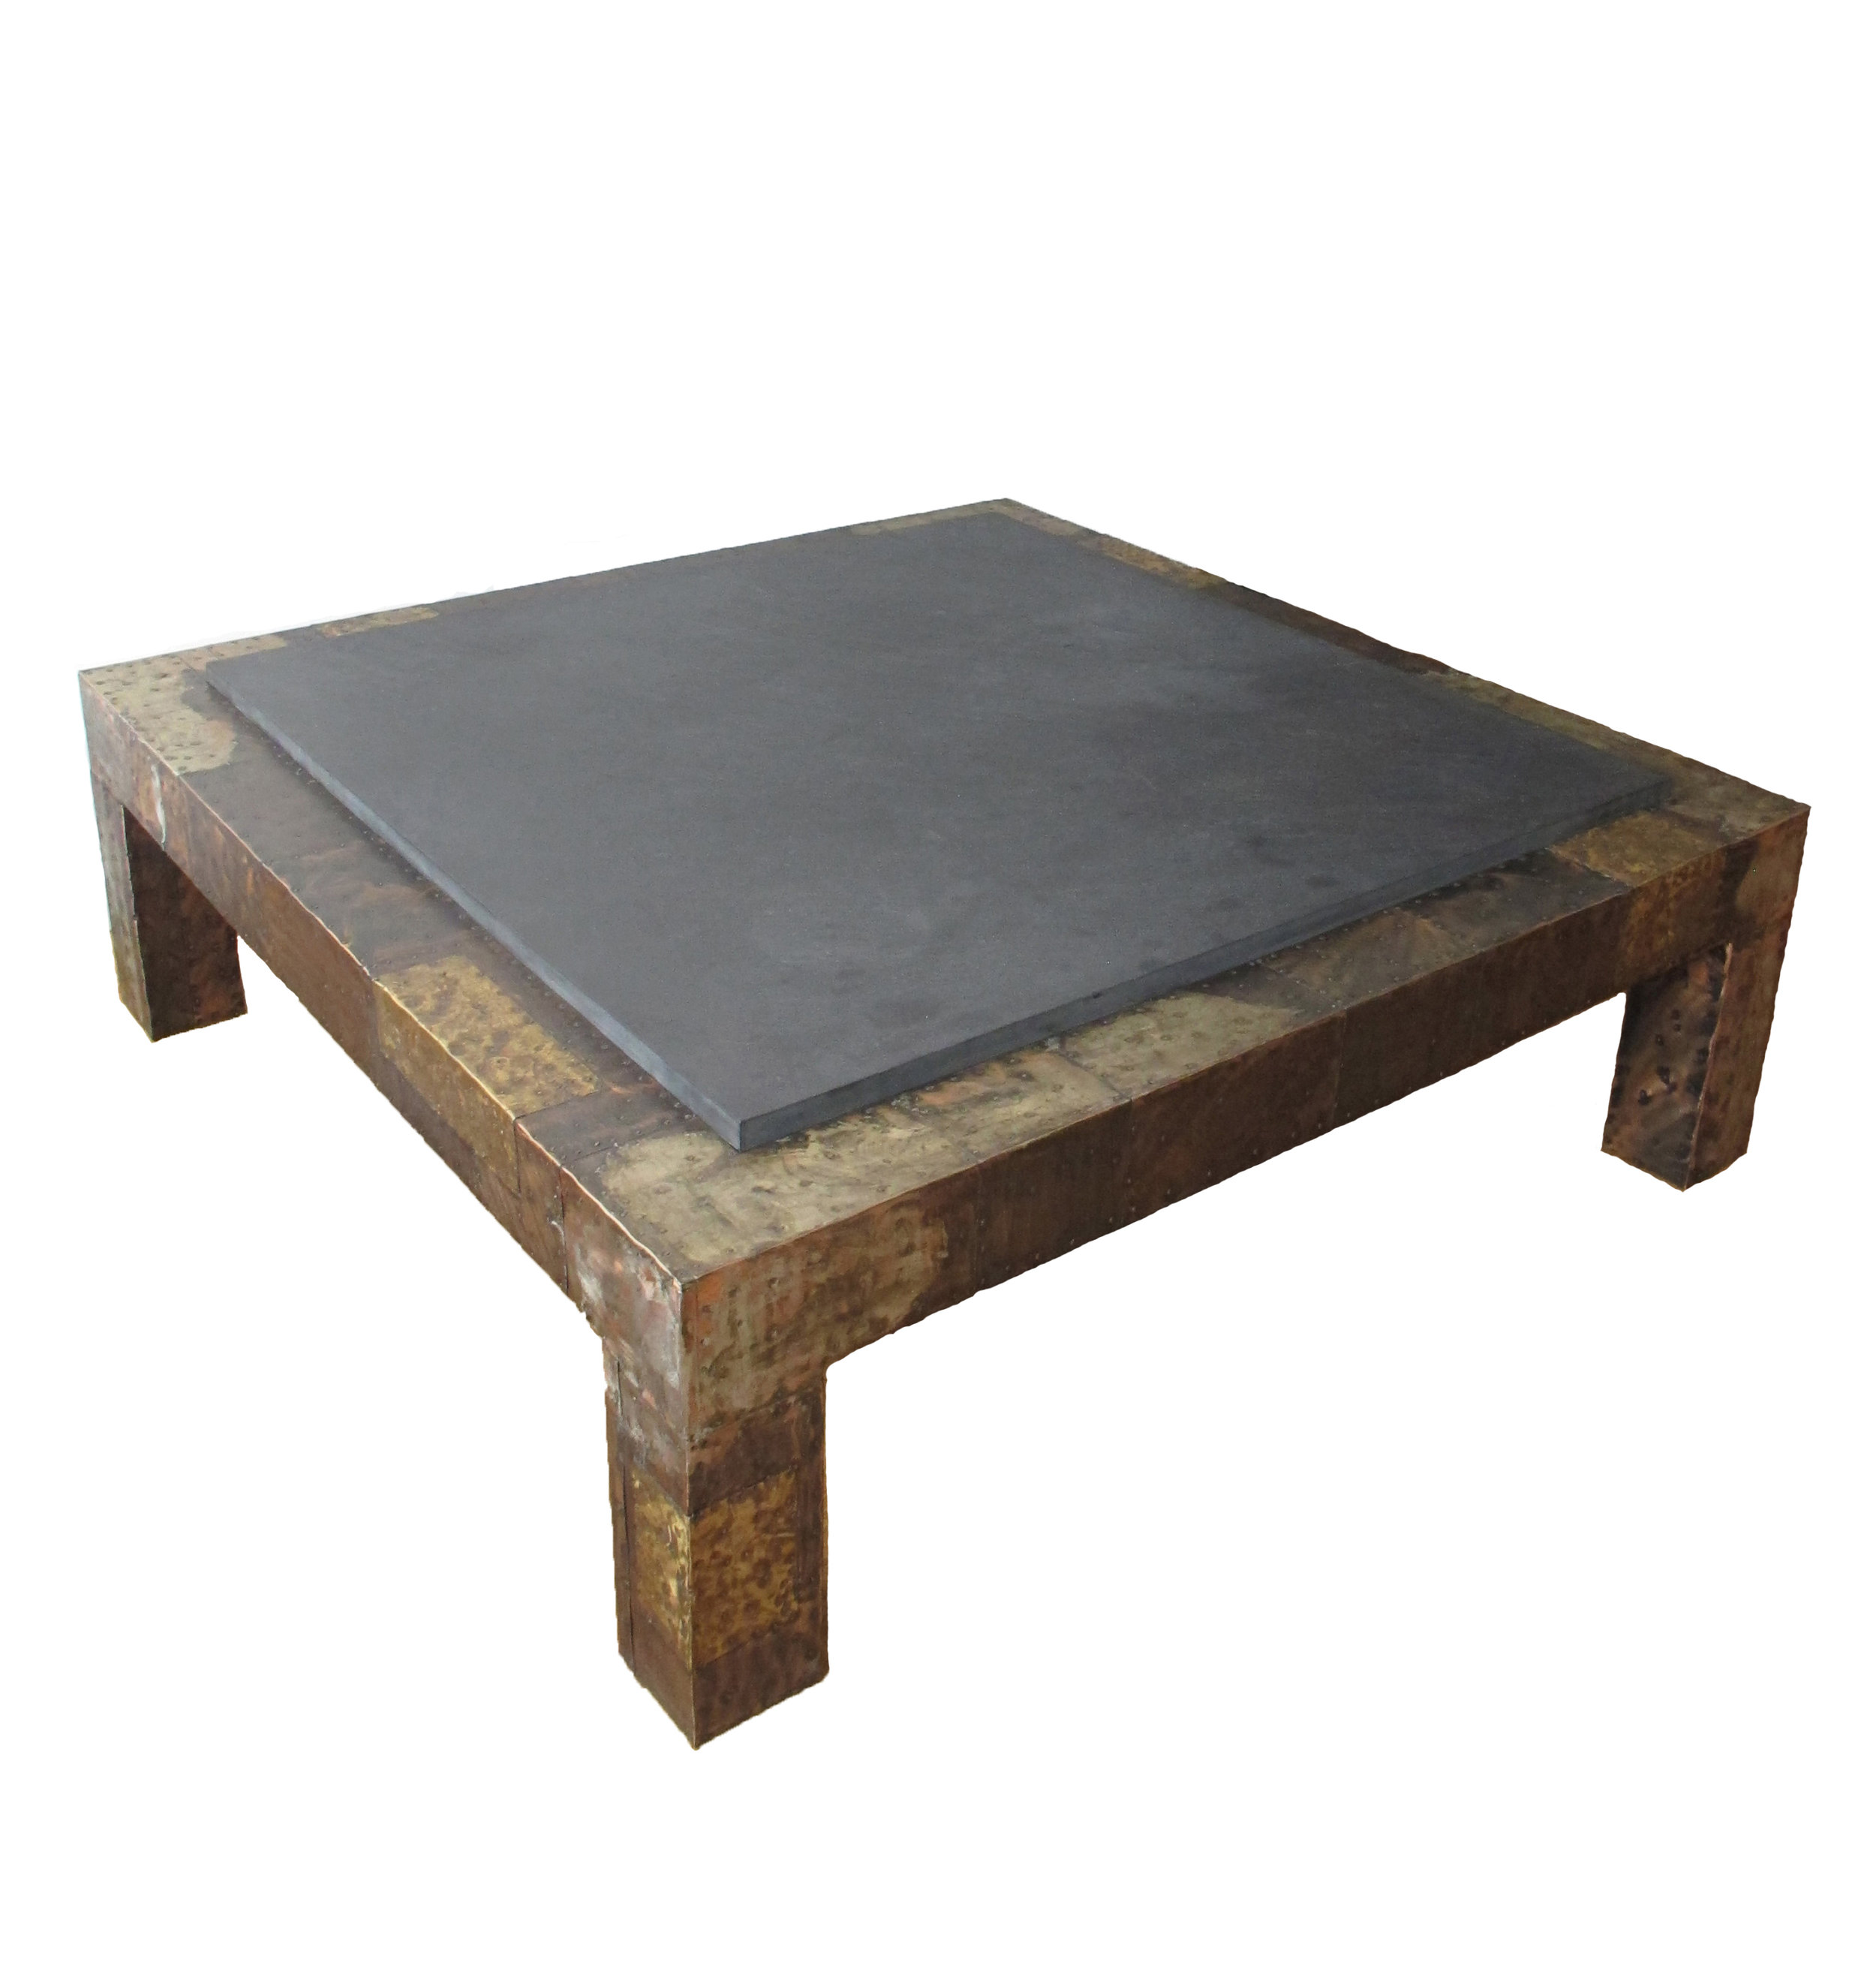 MID CENTURY BRUTALIST STYLE COFFEE TABLE BY PAUL EVANS FOR DIRECTIONAL